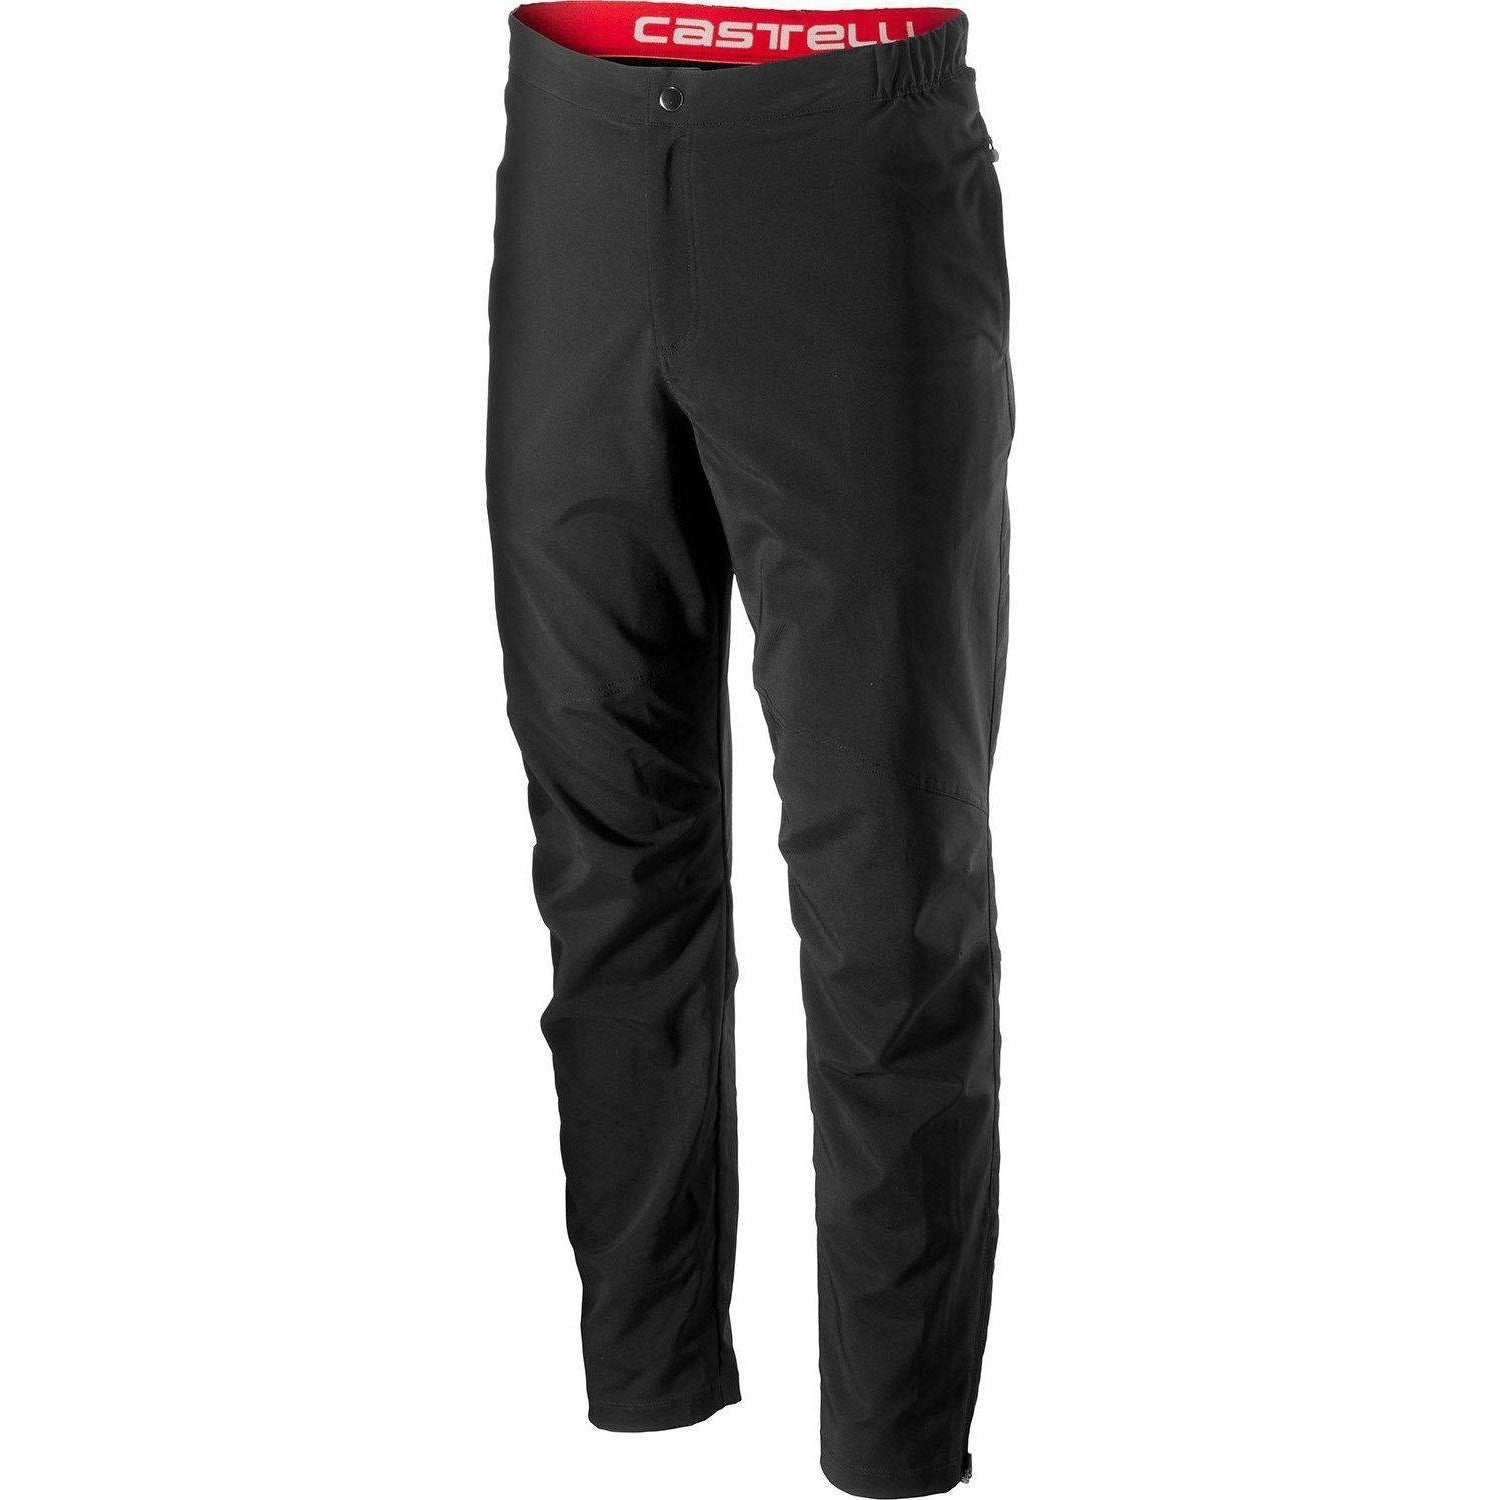 Castelli-Castelli Milano Trousers-Black-XS-CS190720101-saddleback-elite-performance-cycling